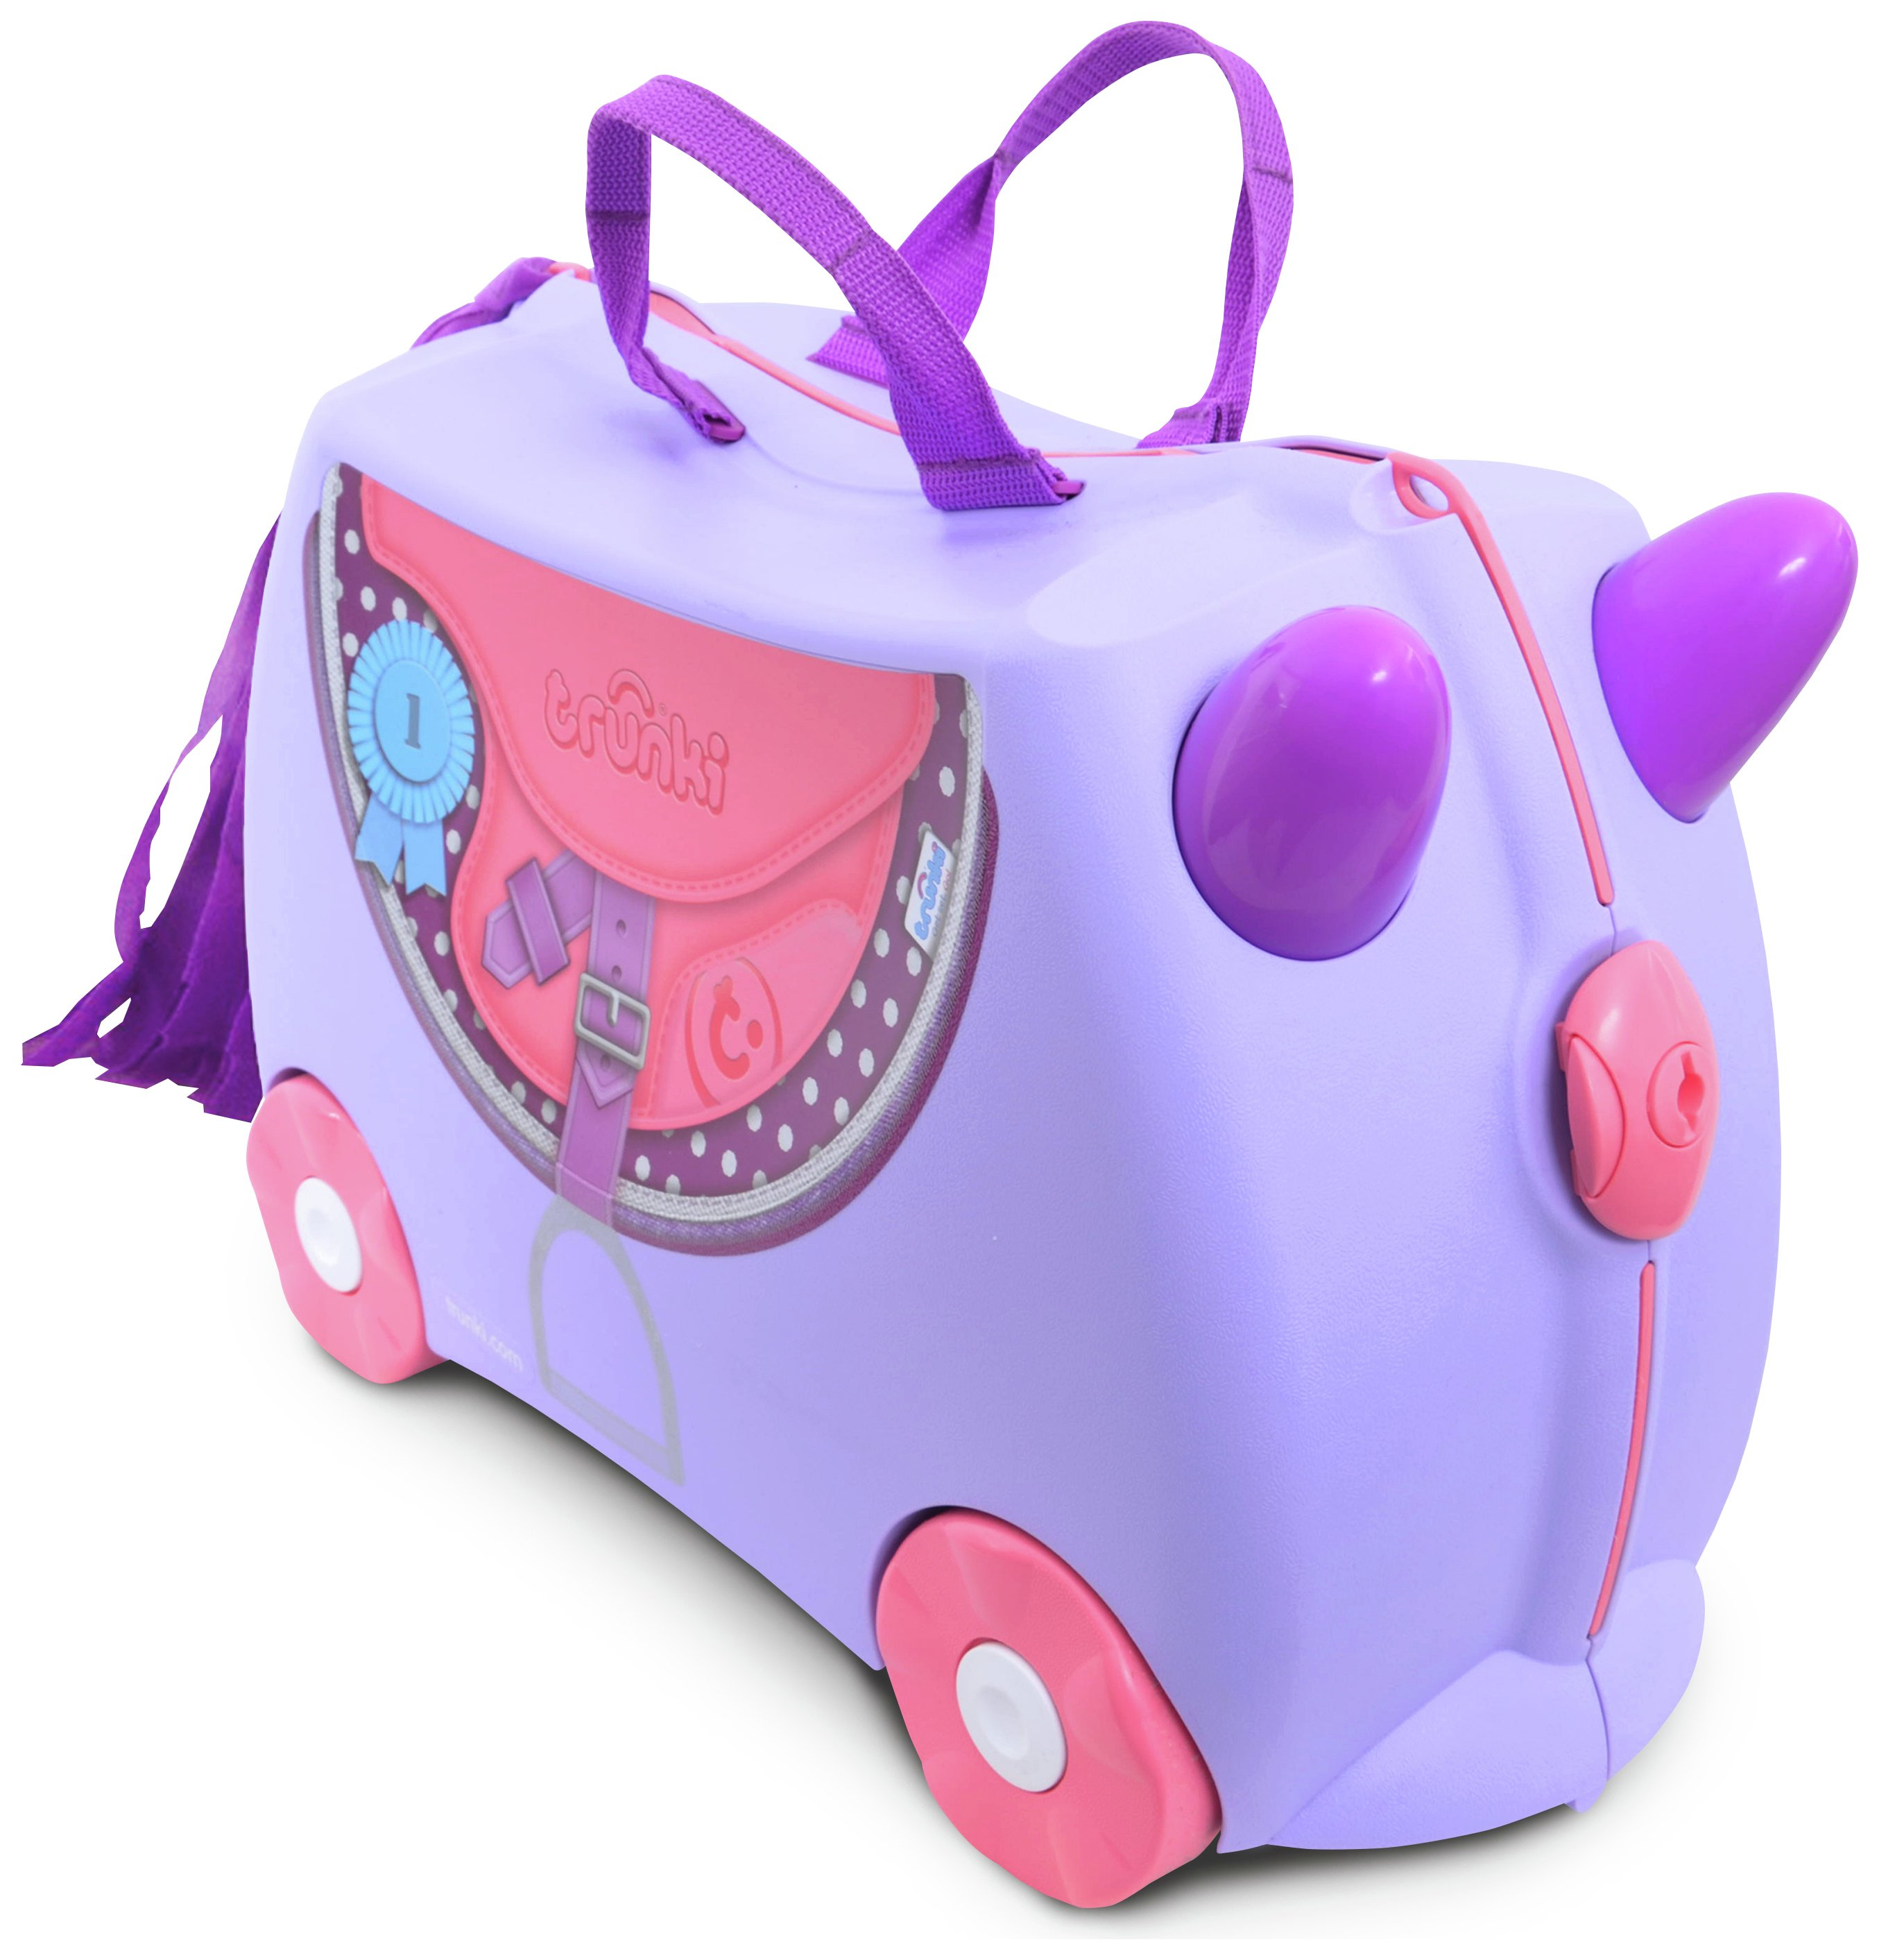 Trunki - Bluebell Pony Ride-On Suitcase - Lilac lowest price